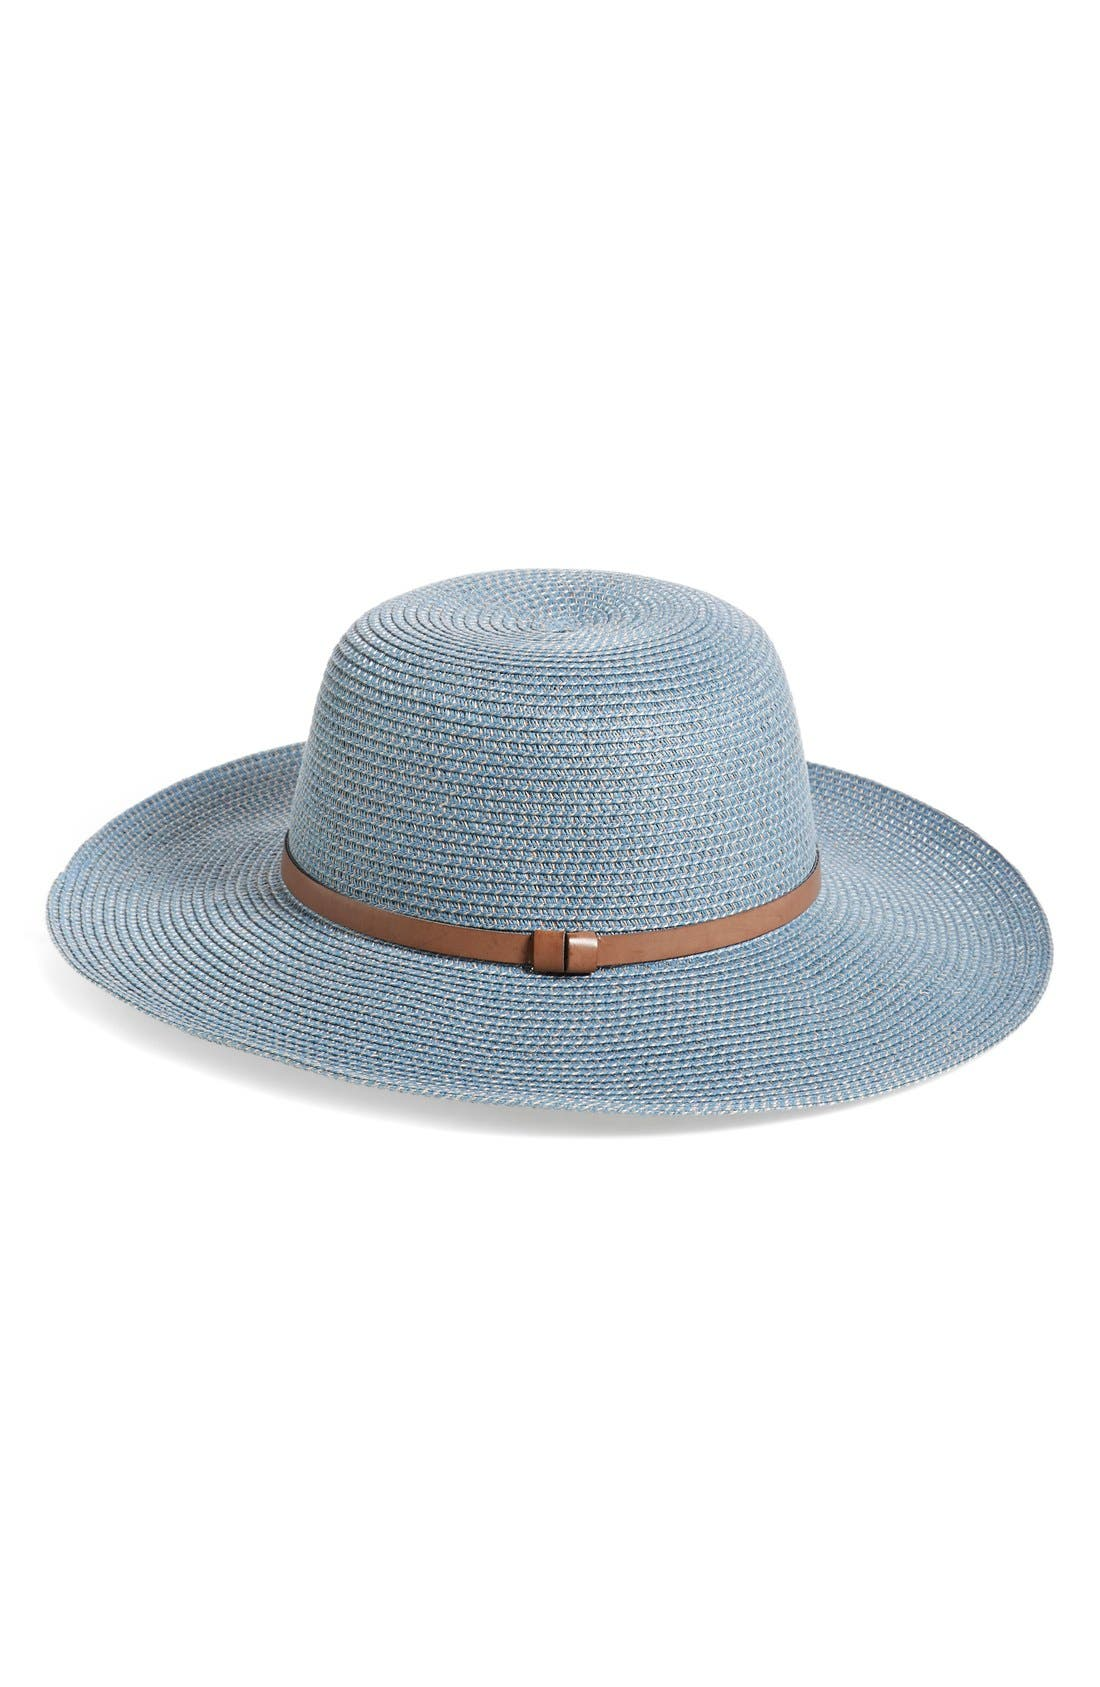 Main Image - Nordstrom Straw Floppy Hat